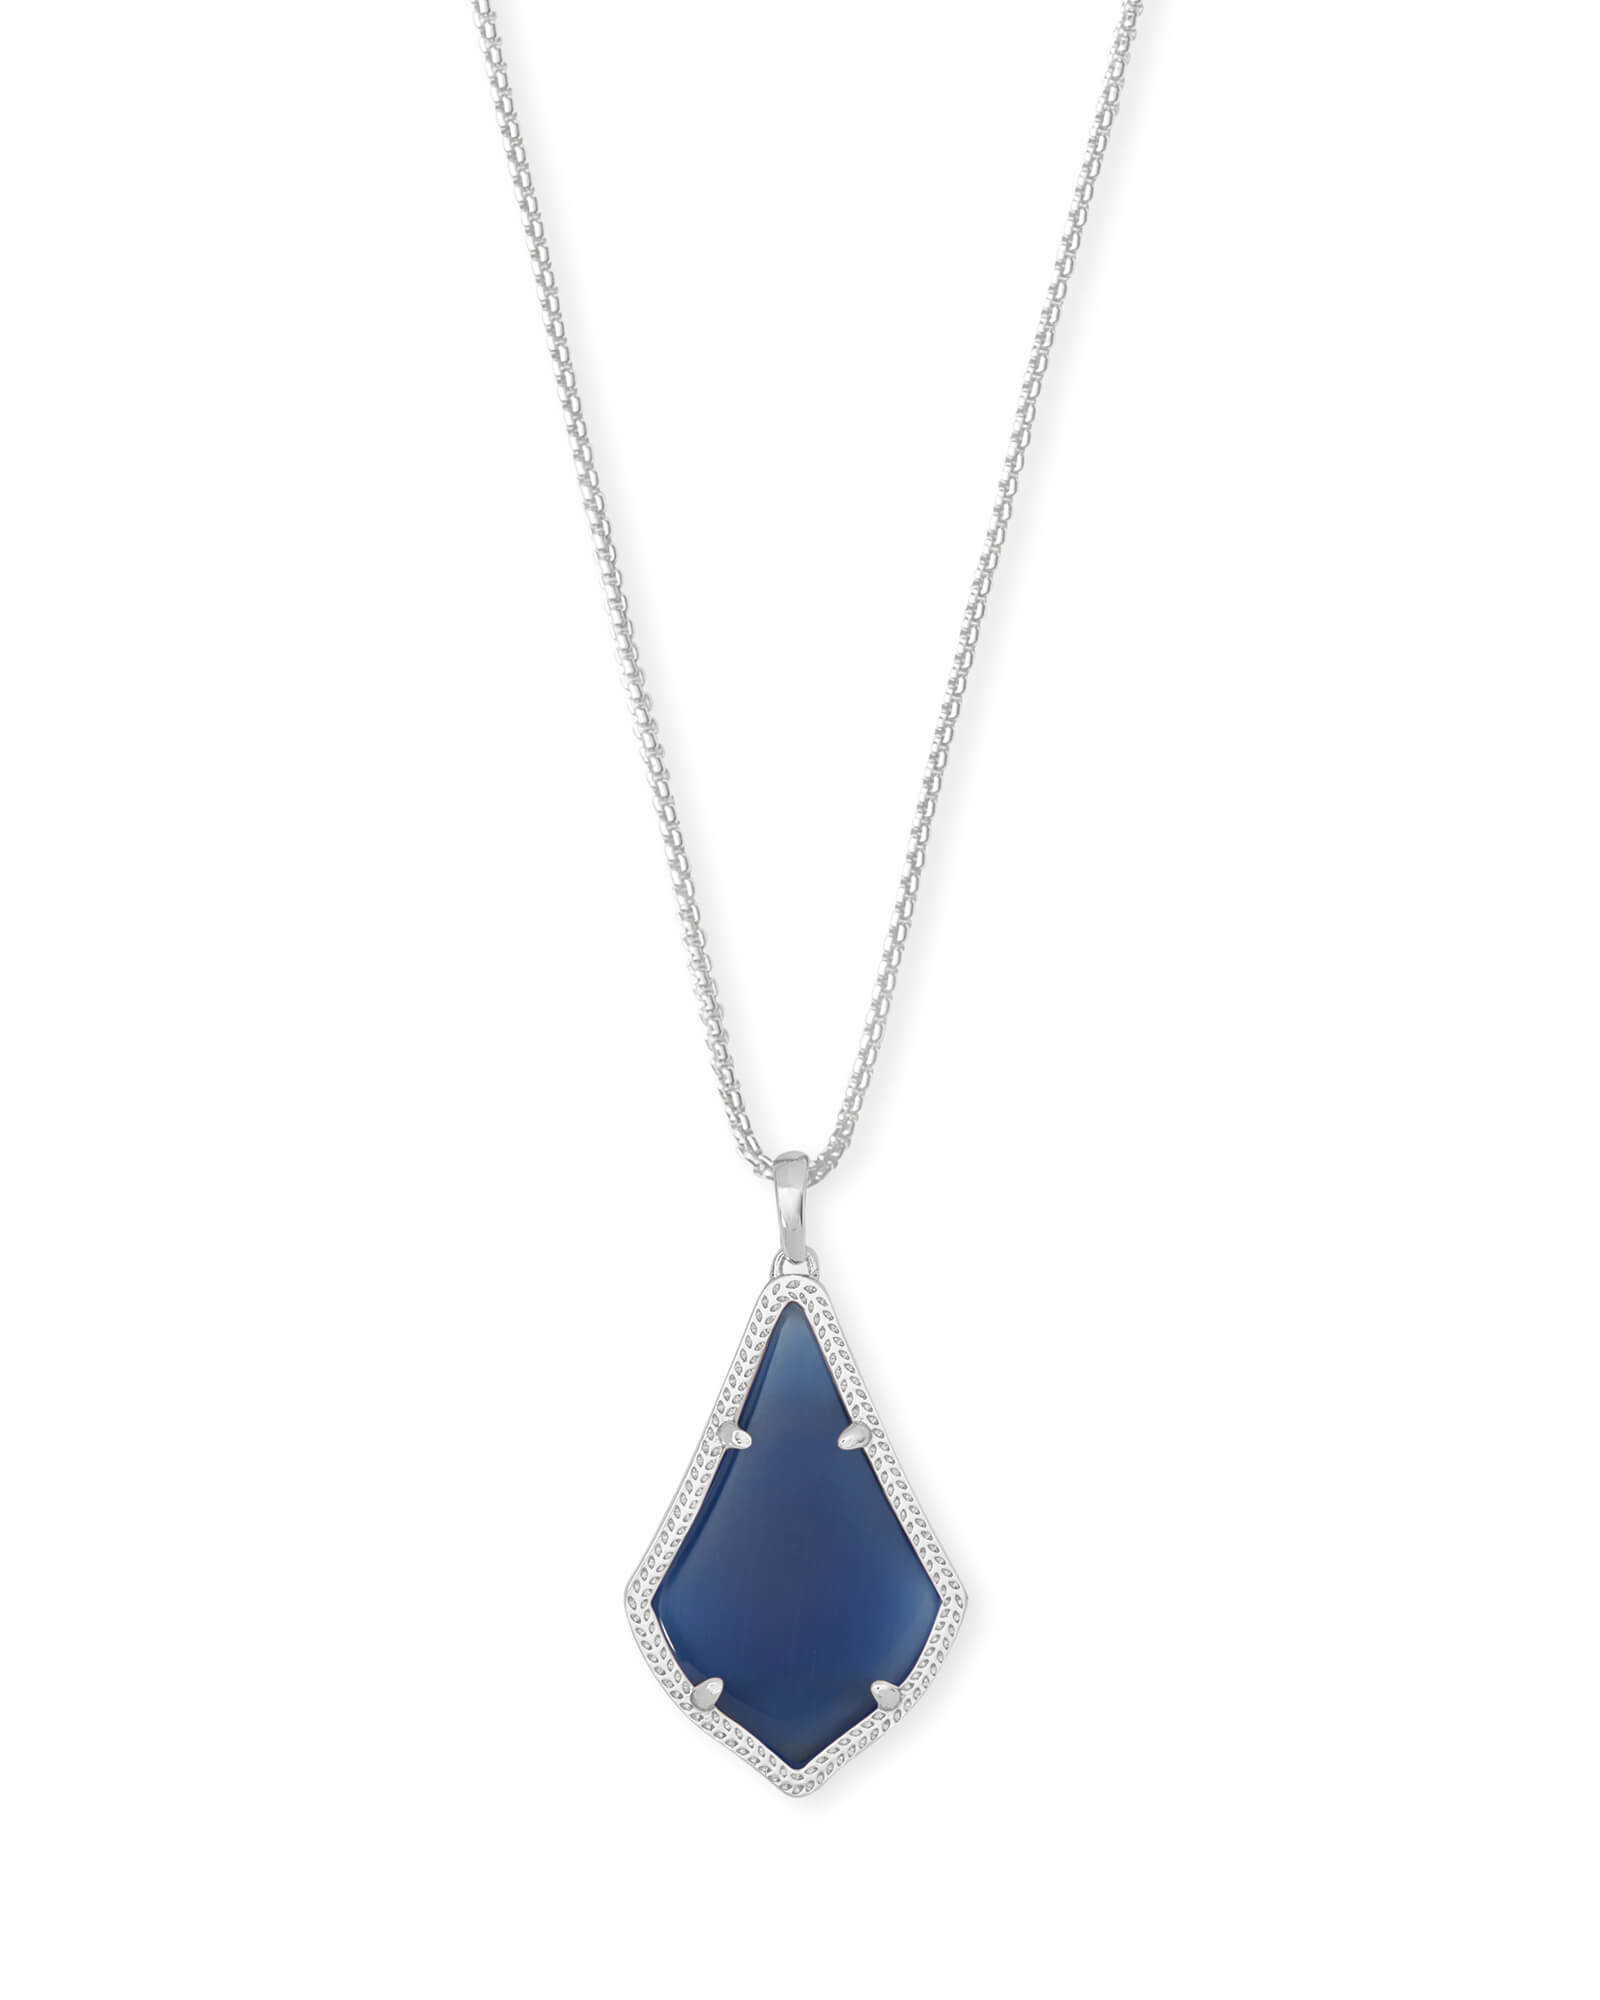 Alex Silver Pendant Necklace in Navy Cat's Eye